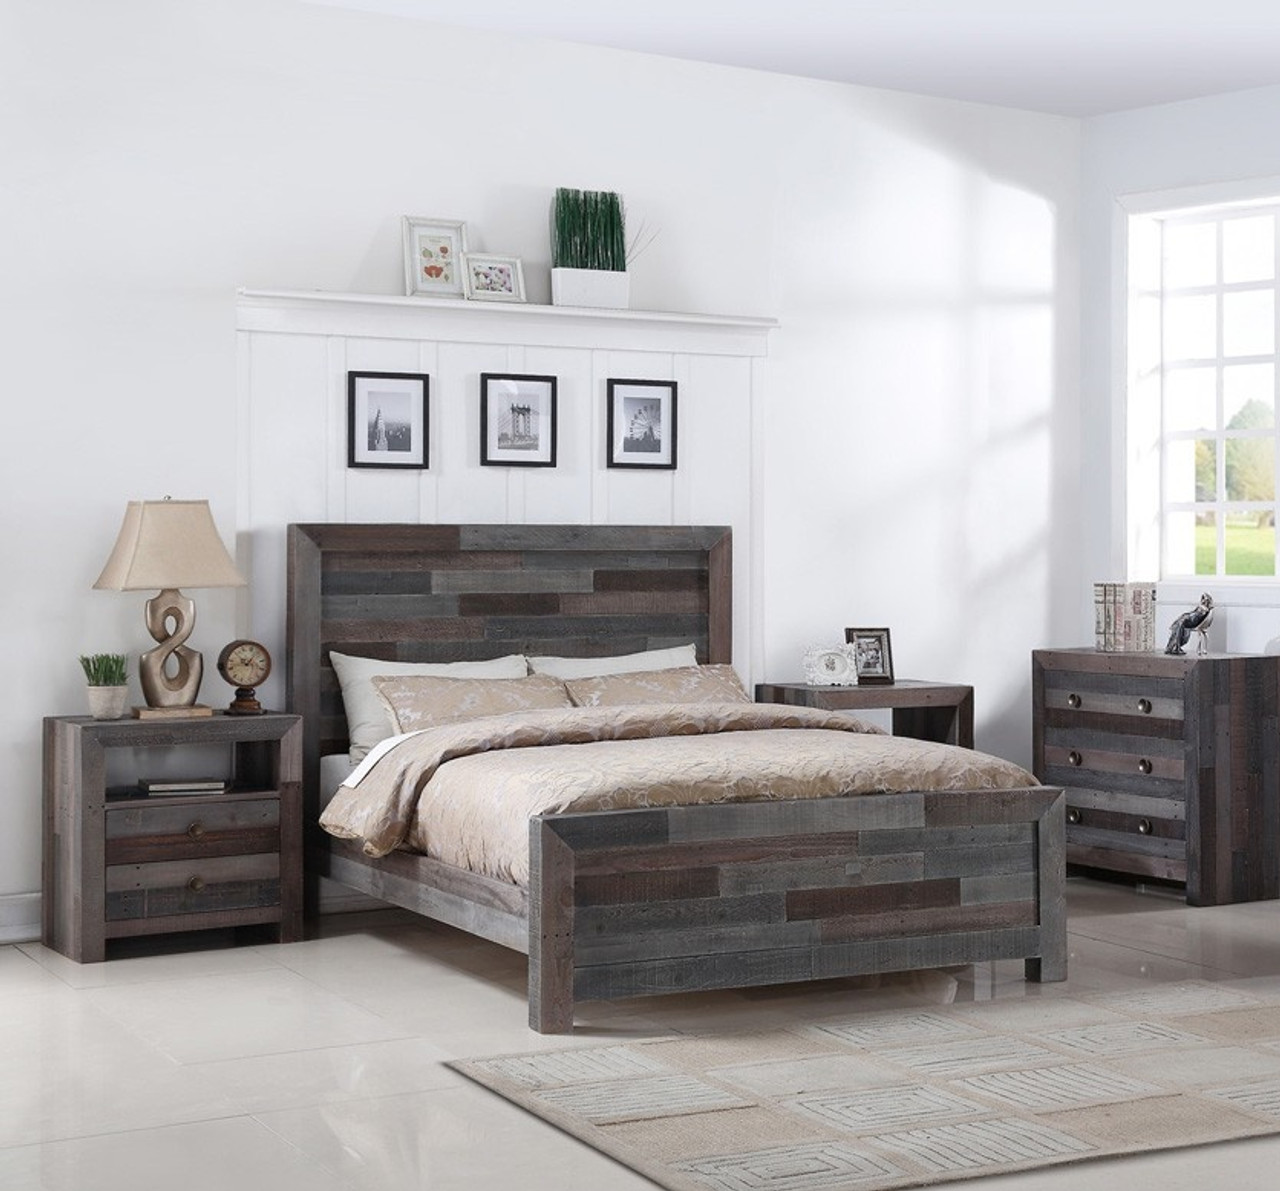 angora reclaimed wood california king platform bed - Wood King Bed Frame